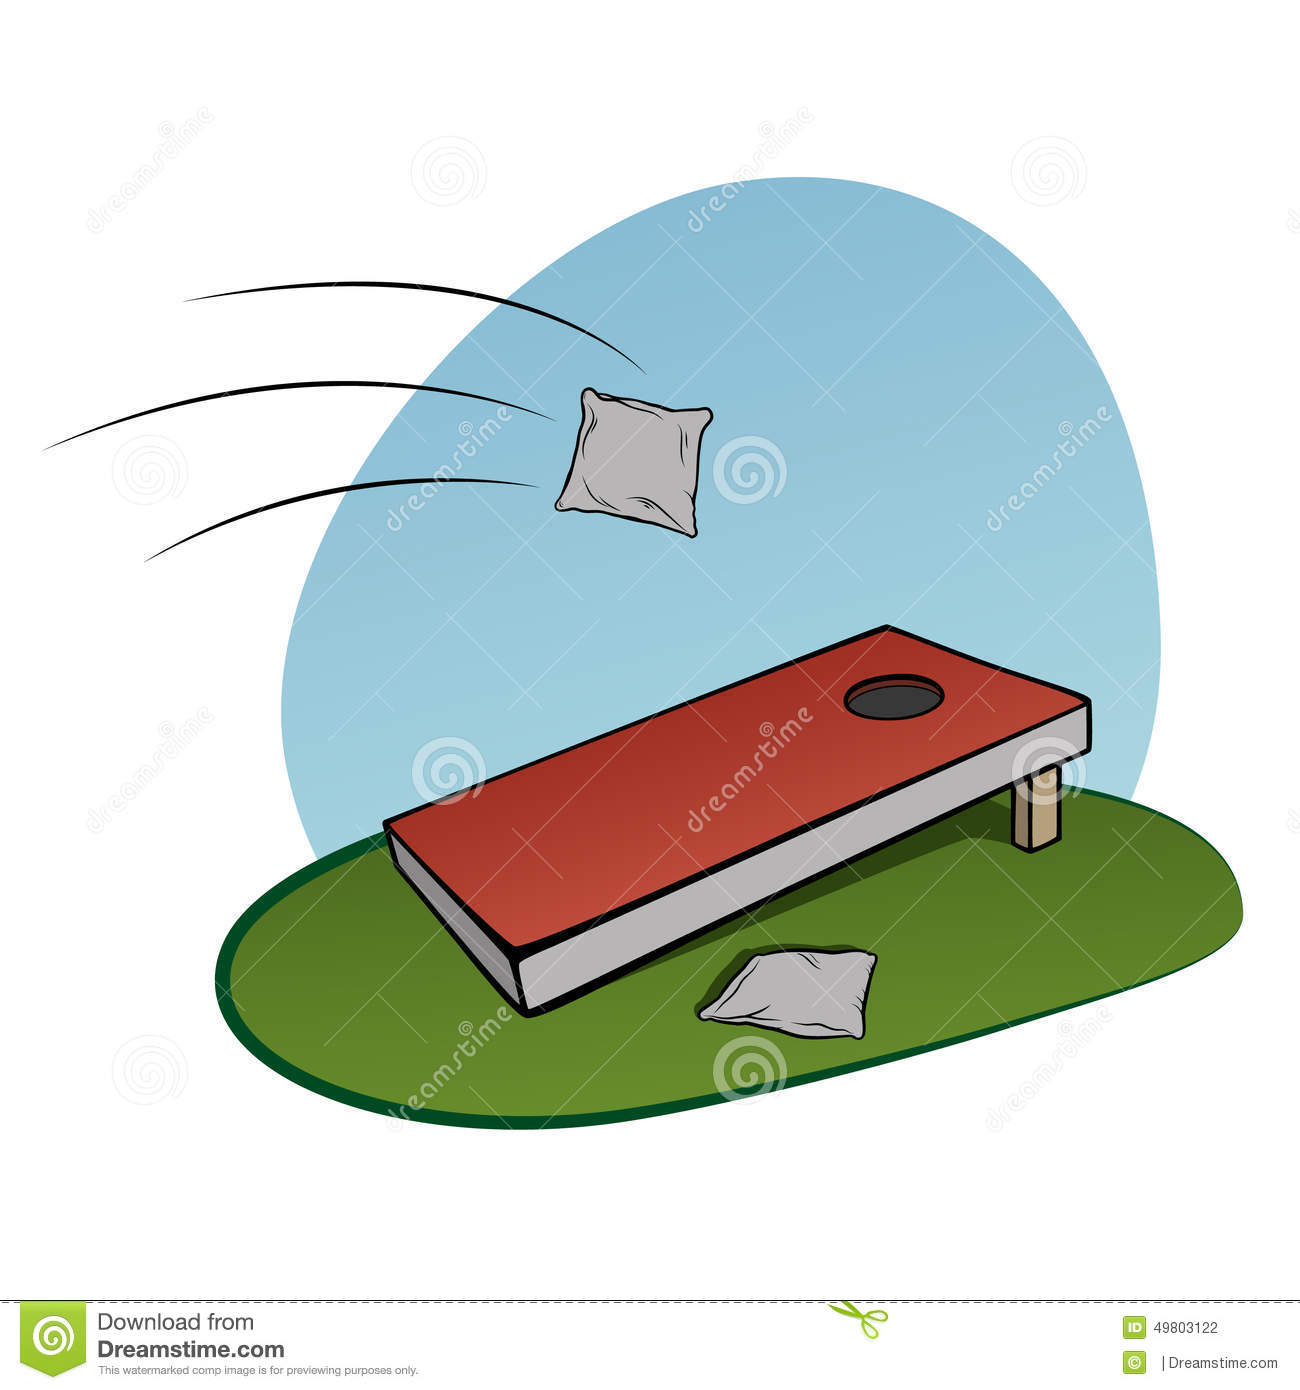 Corn Hole Game Clipart   Free Clip Art Images